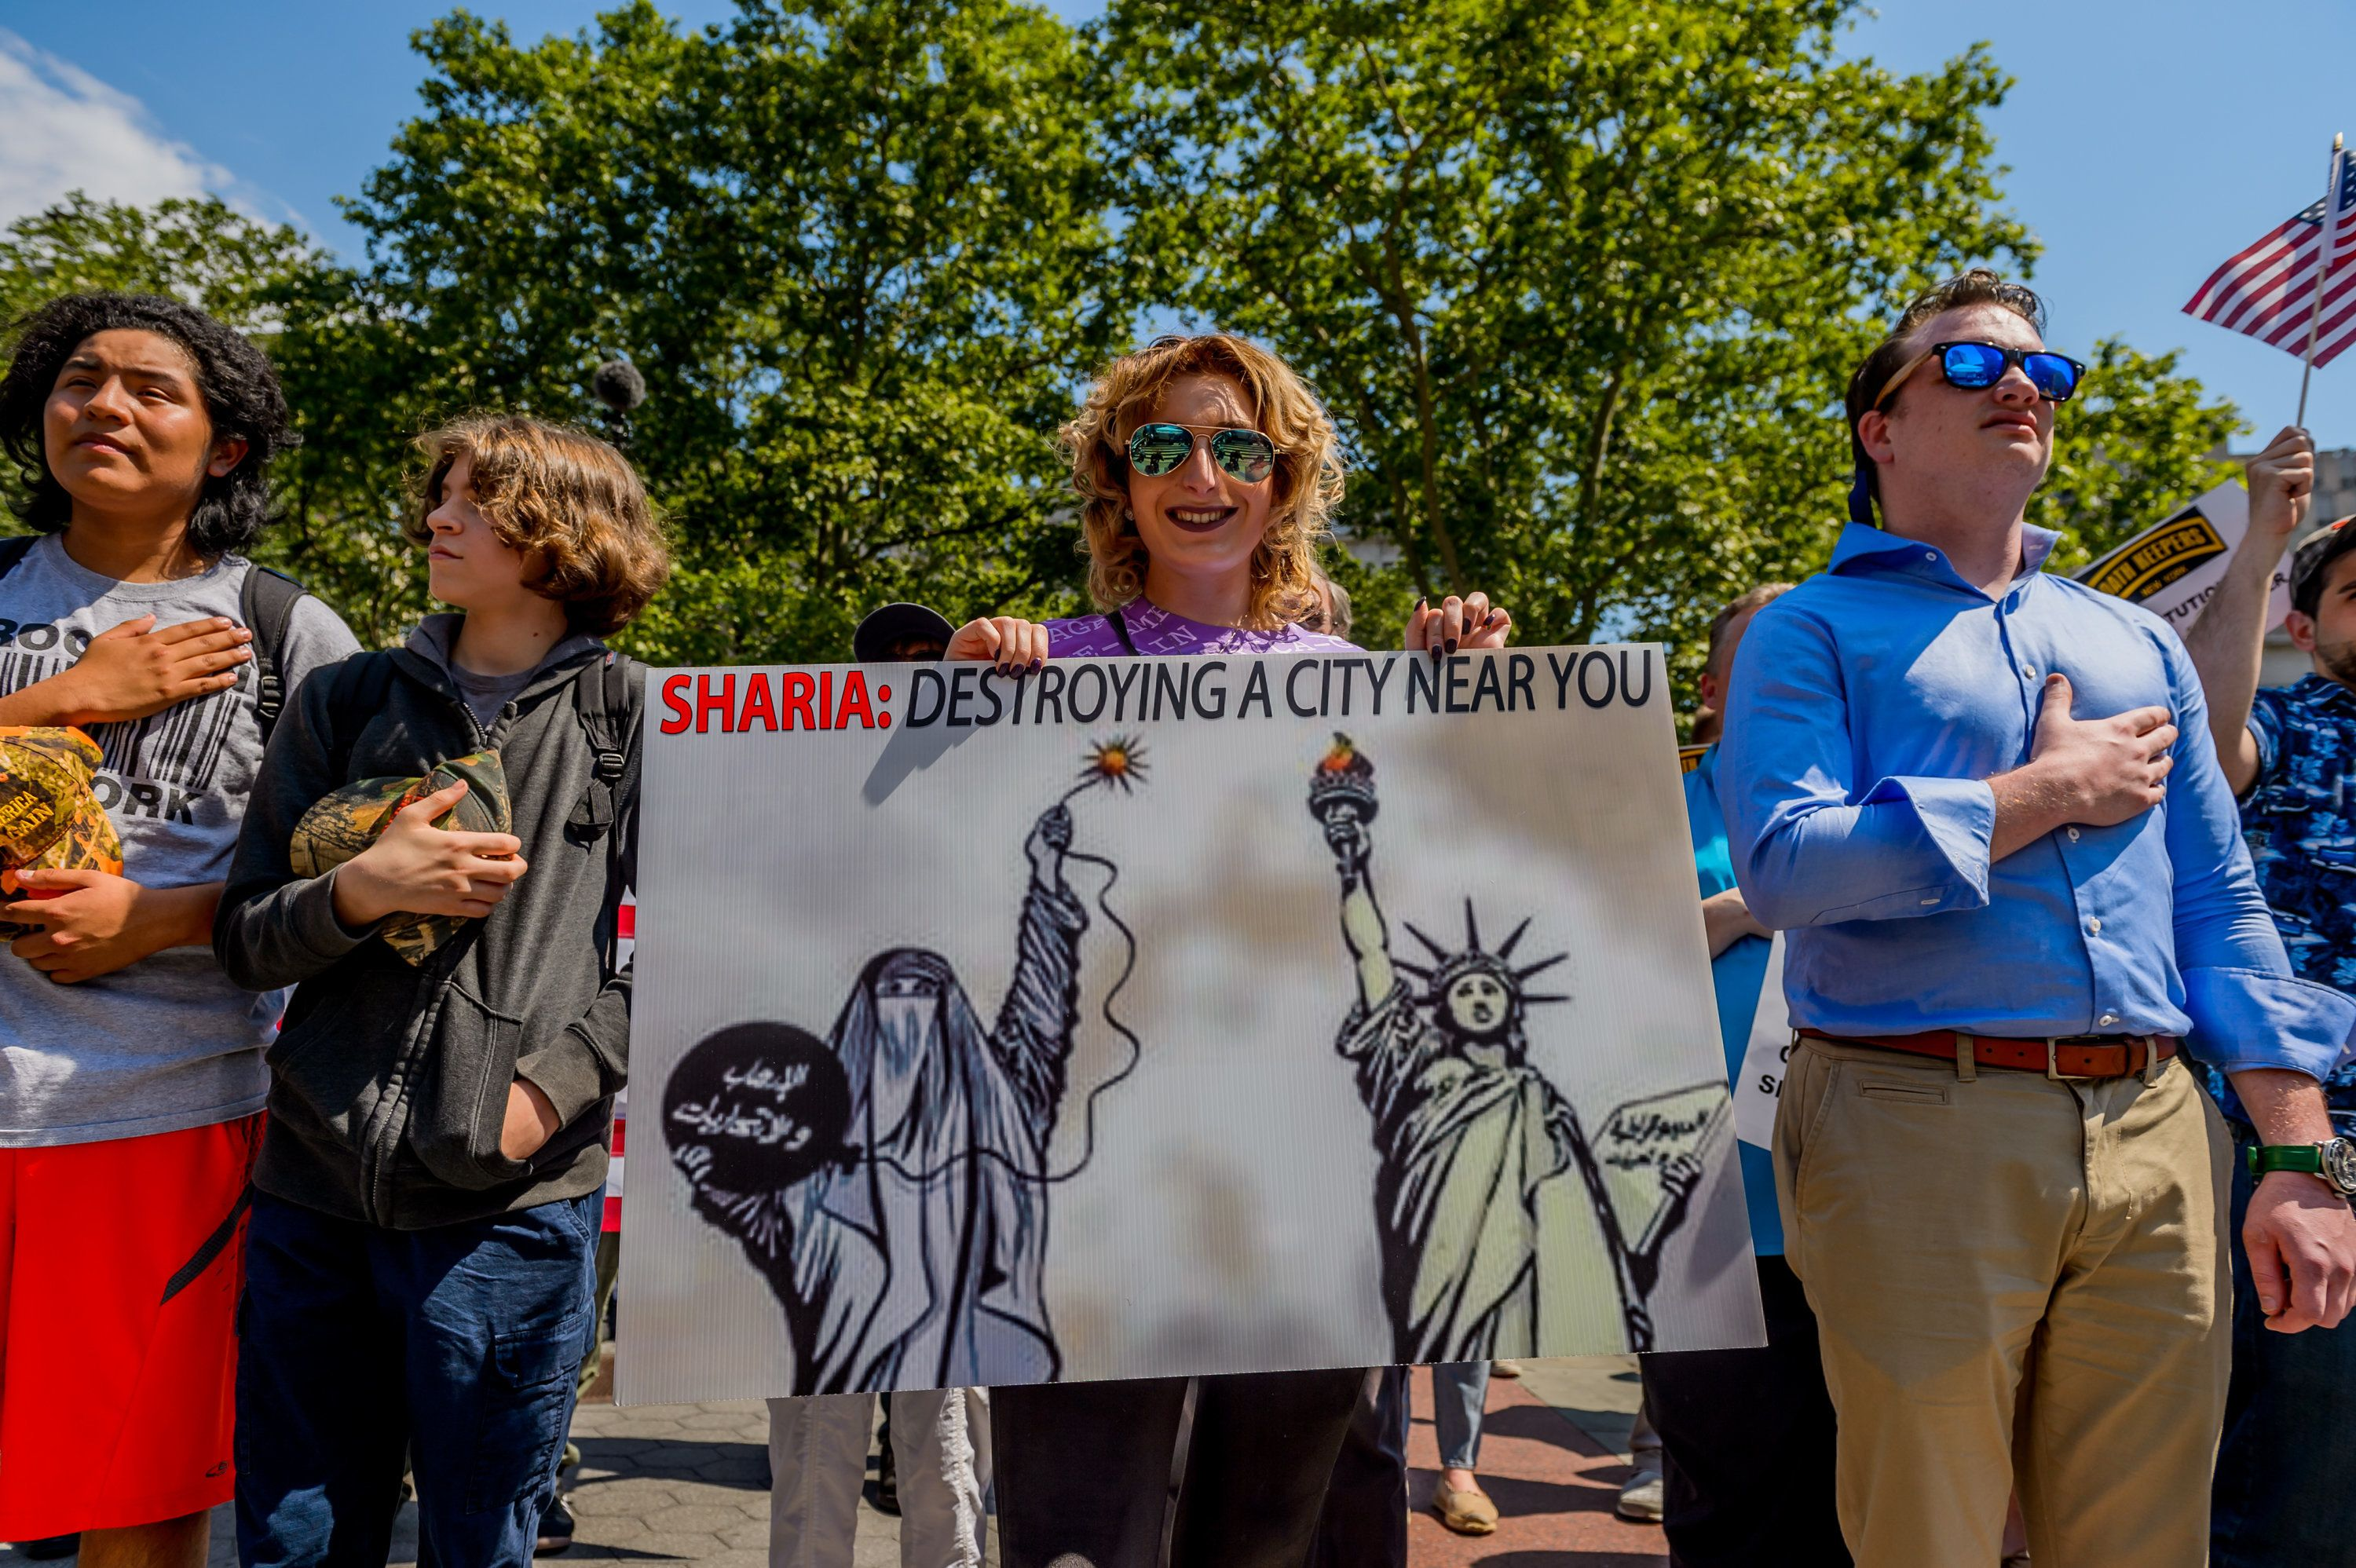 FOLEY SQUARE, NEW YORK, UNITED STATES - 2017/06/10: About a hundred people participated on the March Against Sharia organized by ACT for America at Foley Square in New York City as part of similar events in cities across the nation. (Photo by Erik McGregor/Pacific Press/LightRocket via Getty Images)